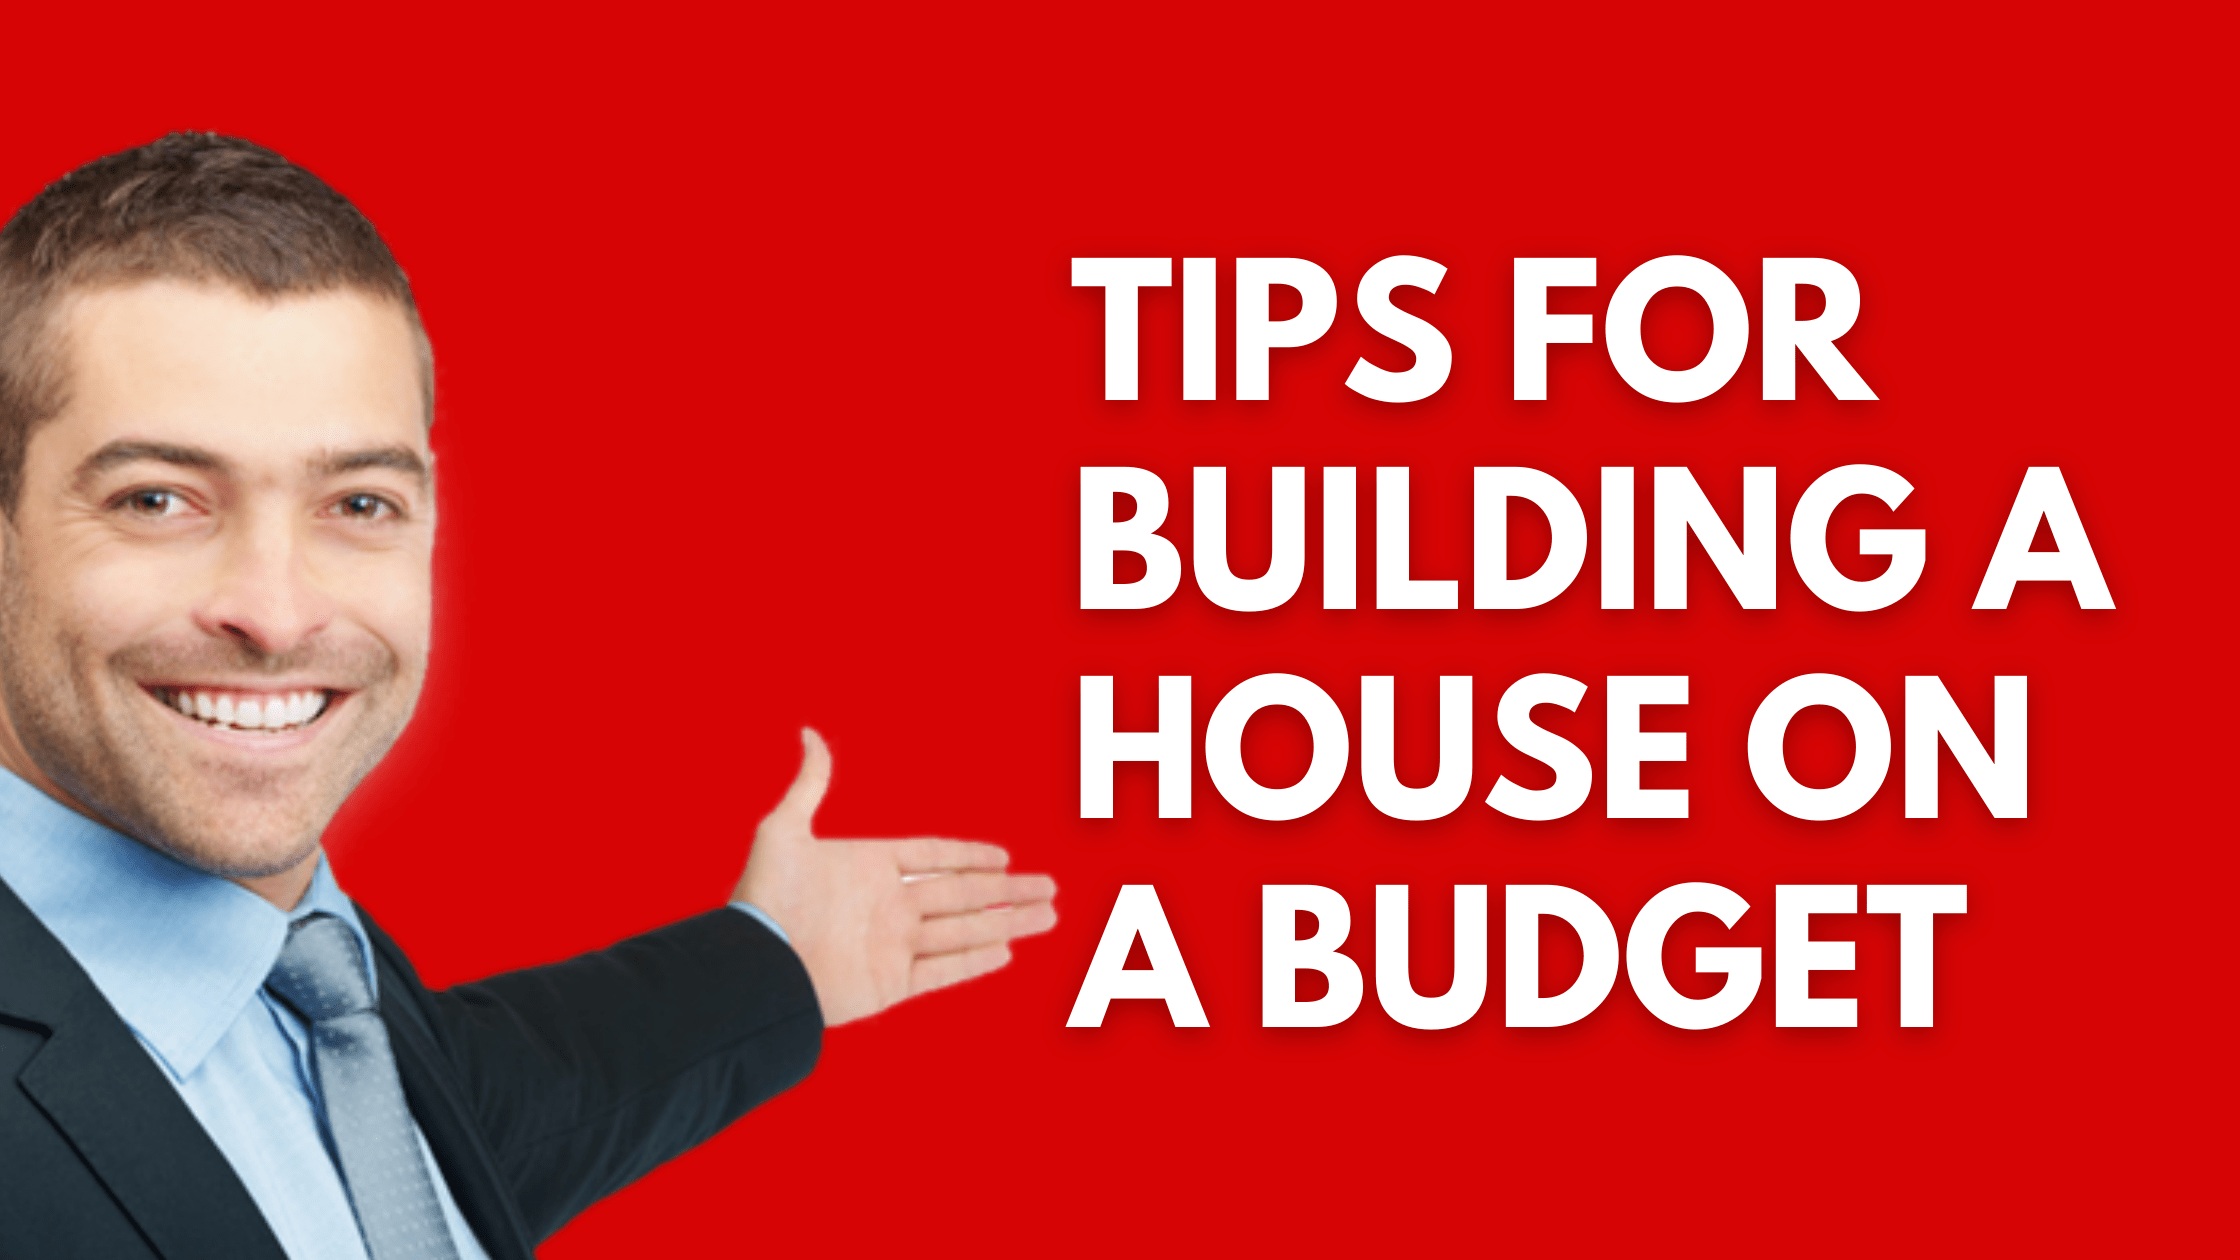 tips for building a house on a budget